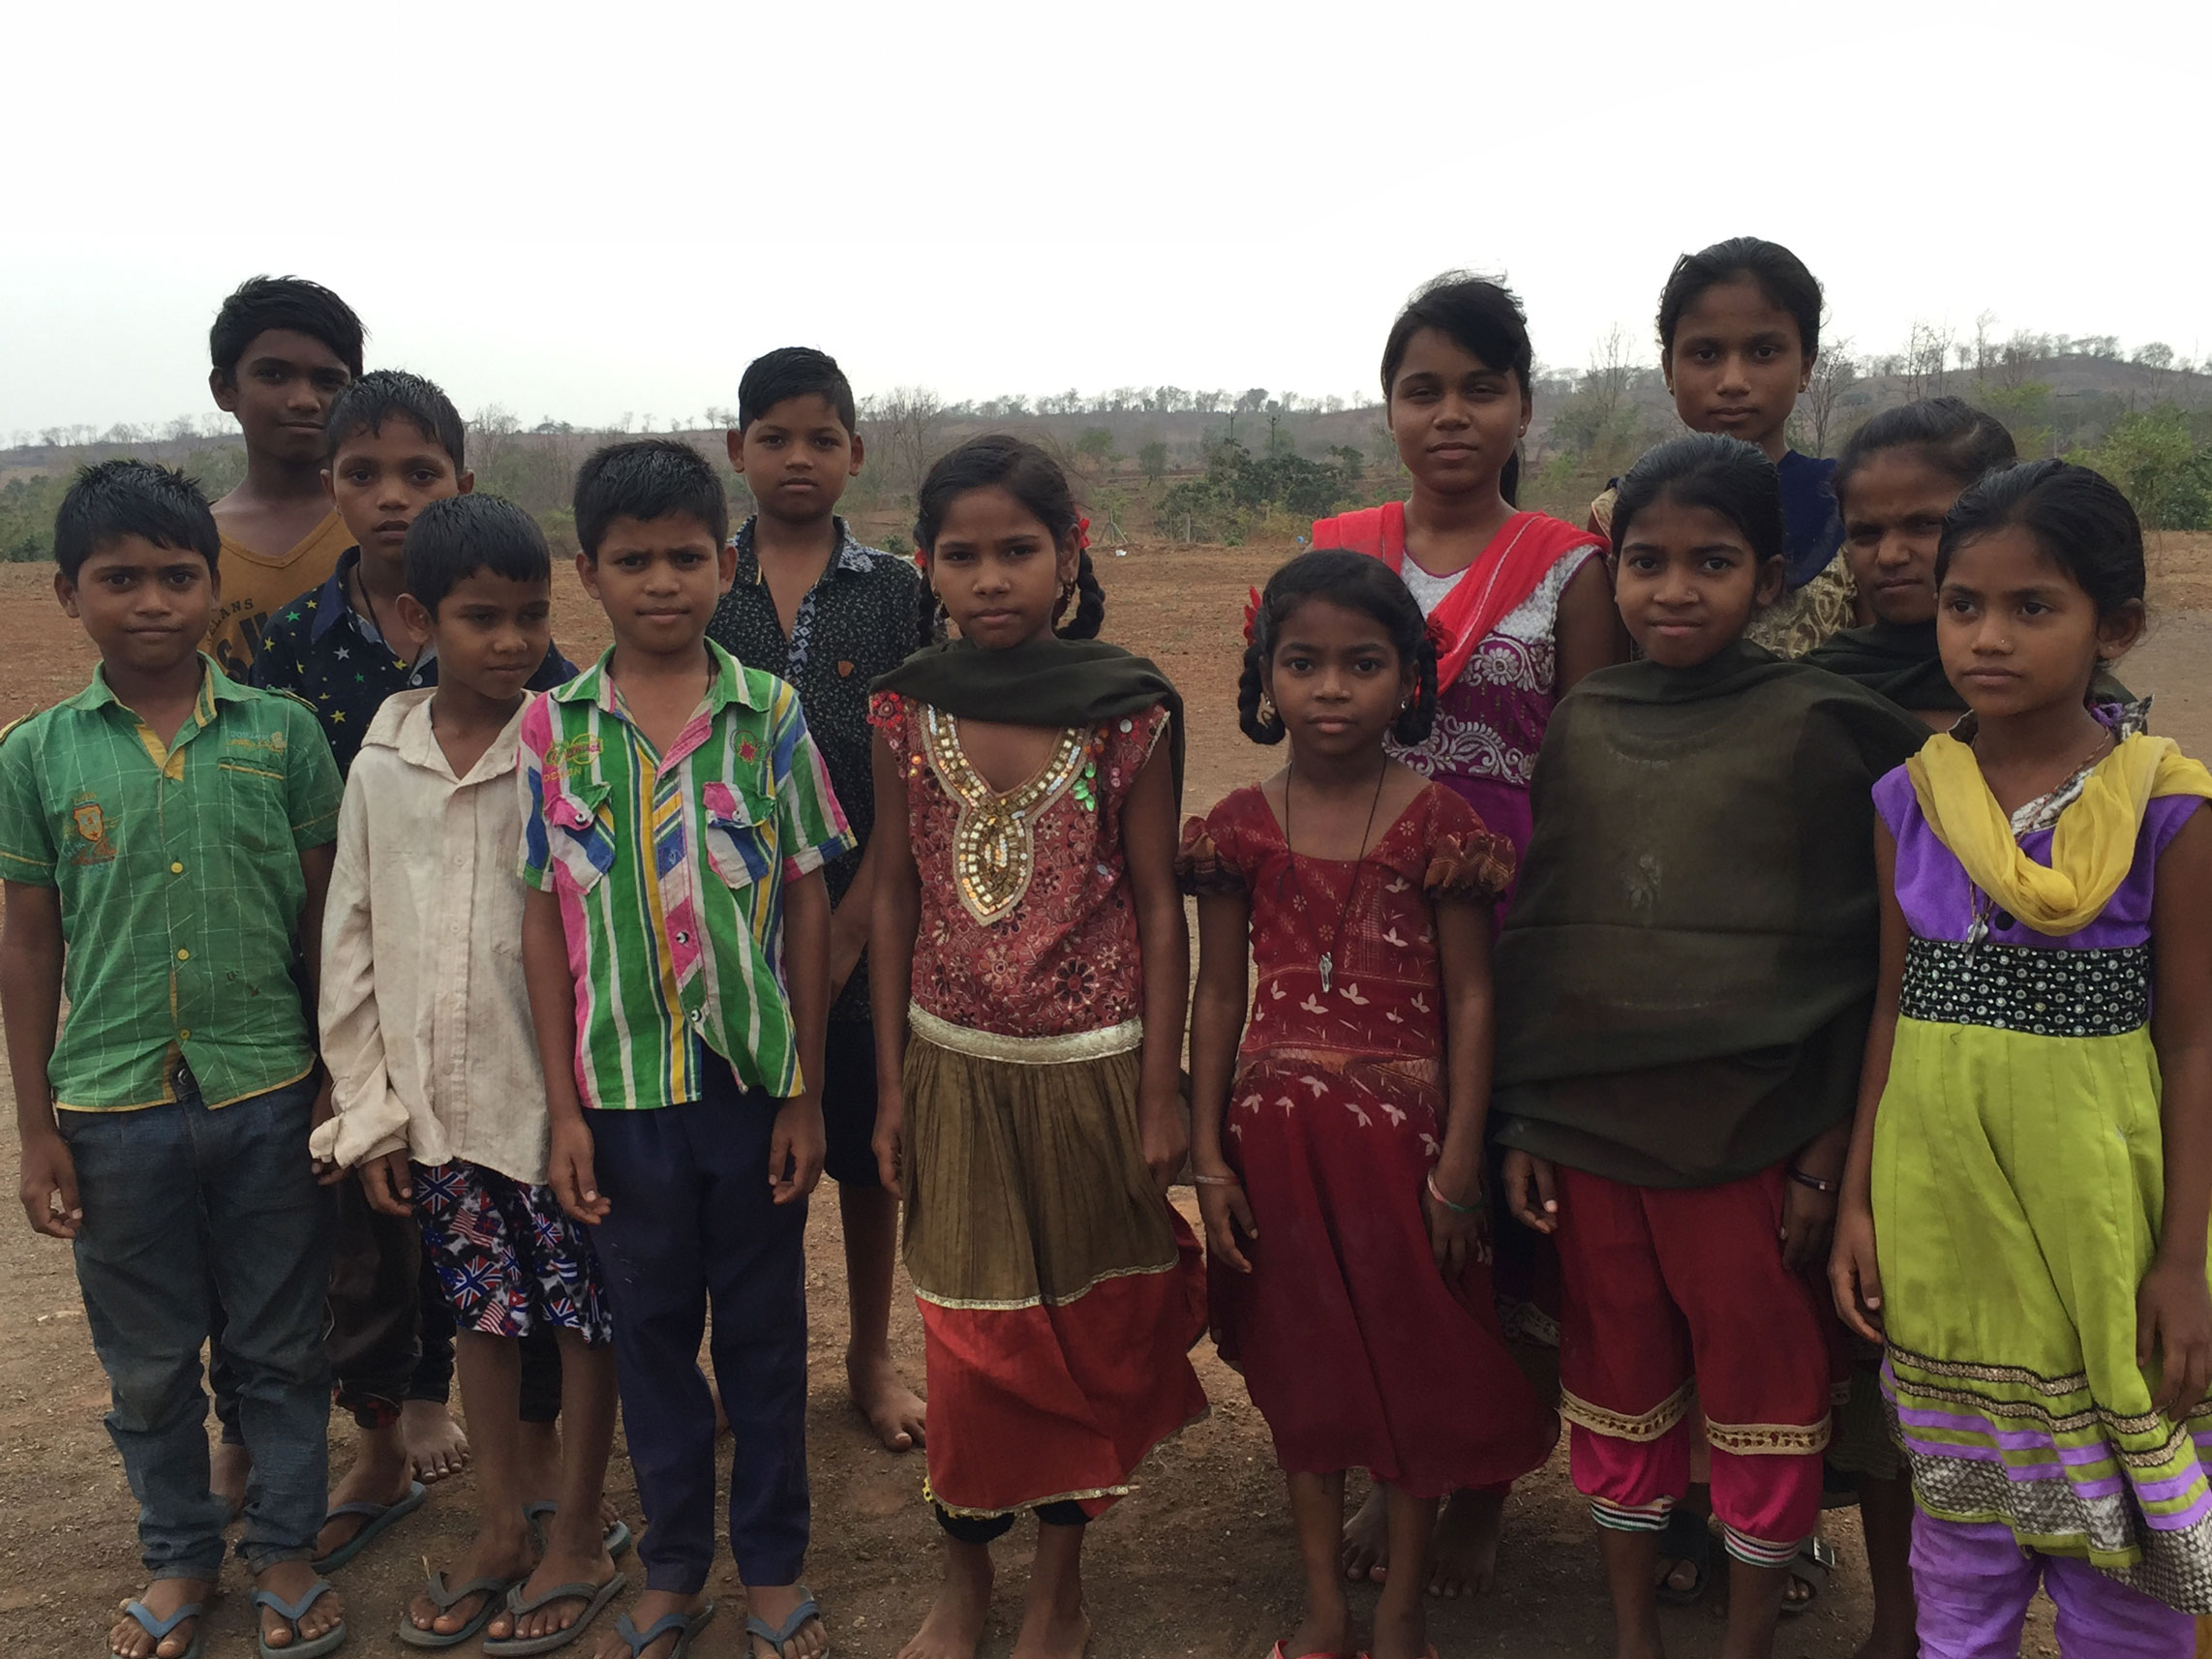 CARING-FOR-ORPHANED-CHILDREN-IN-INDIA-1